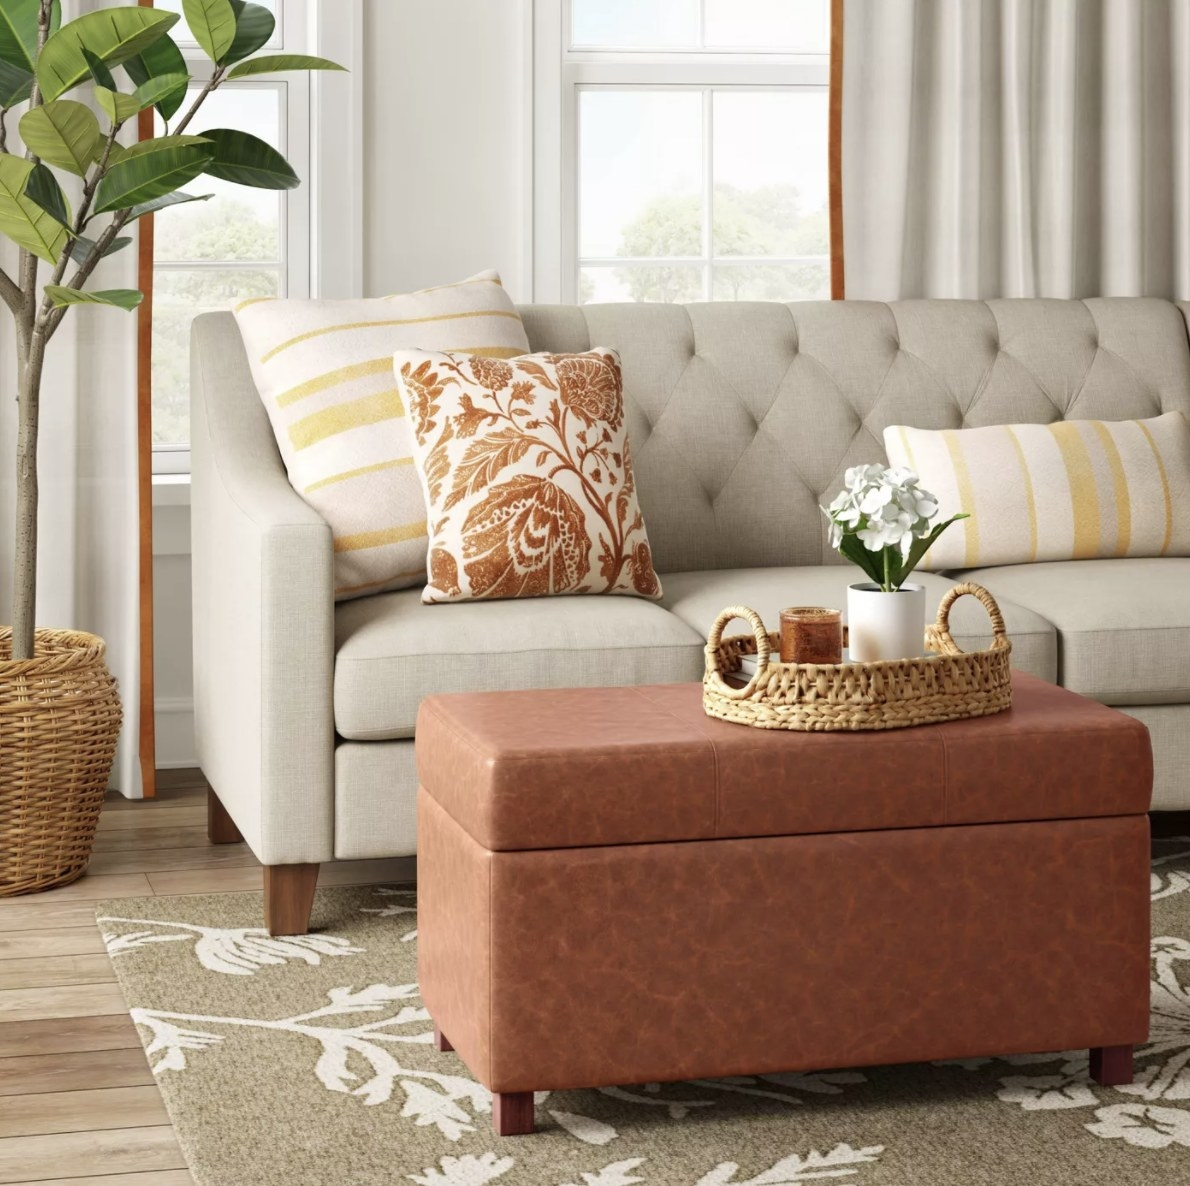 The ottoman is made of caramel faux leather and is a rectangular shape